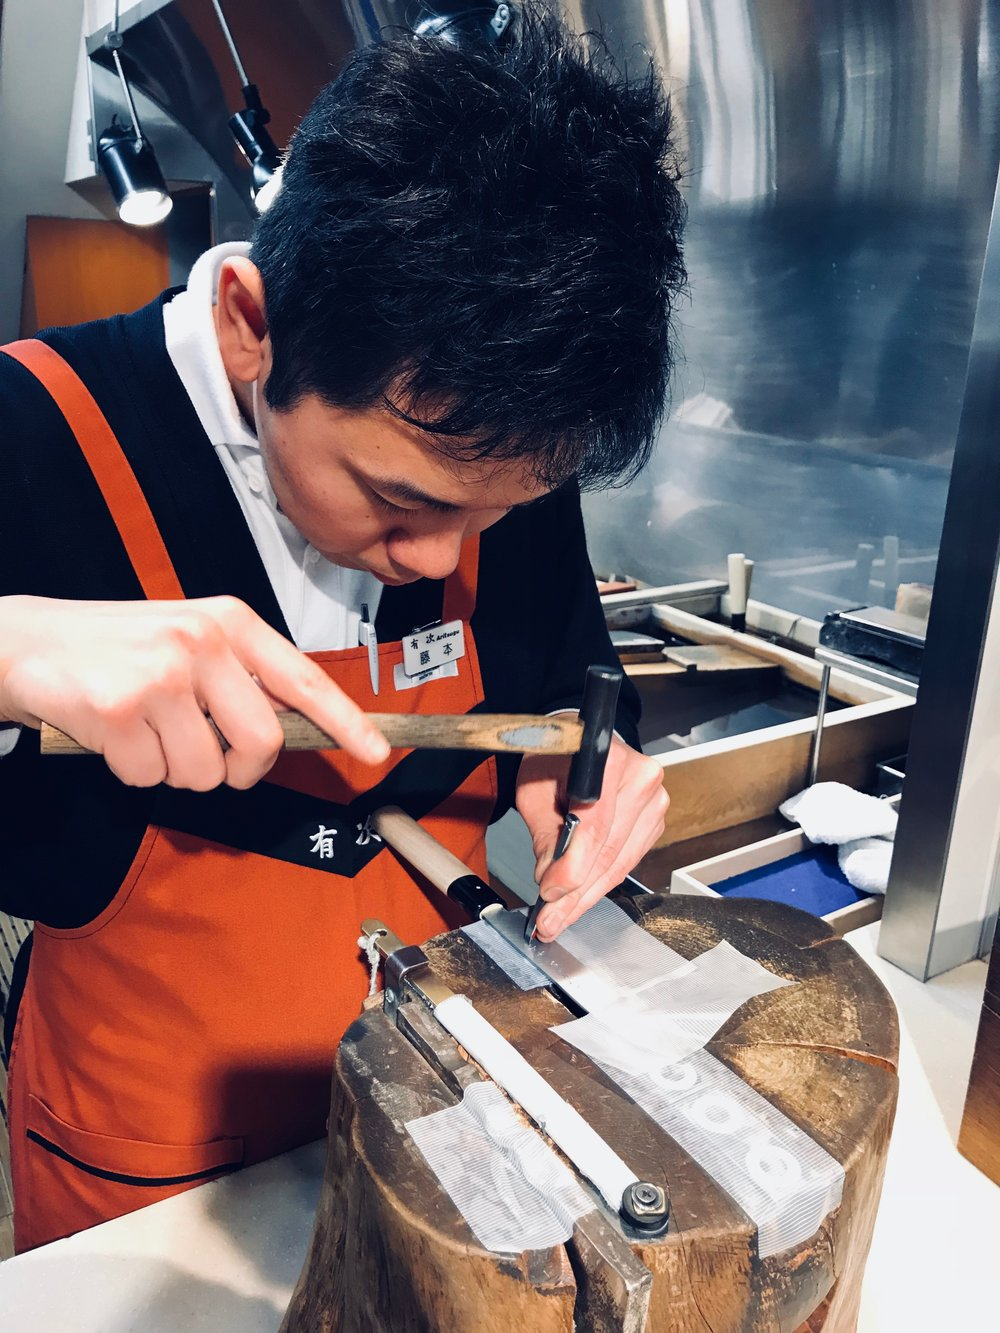 Got my very own Aritsugu chef's knife with my name in Japanese being engraved onto it